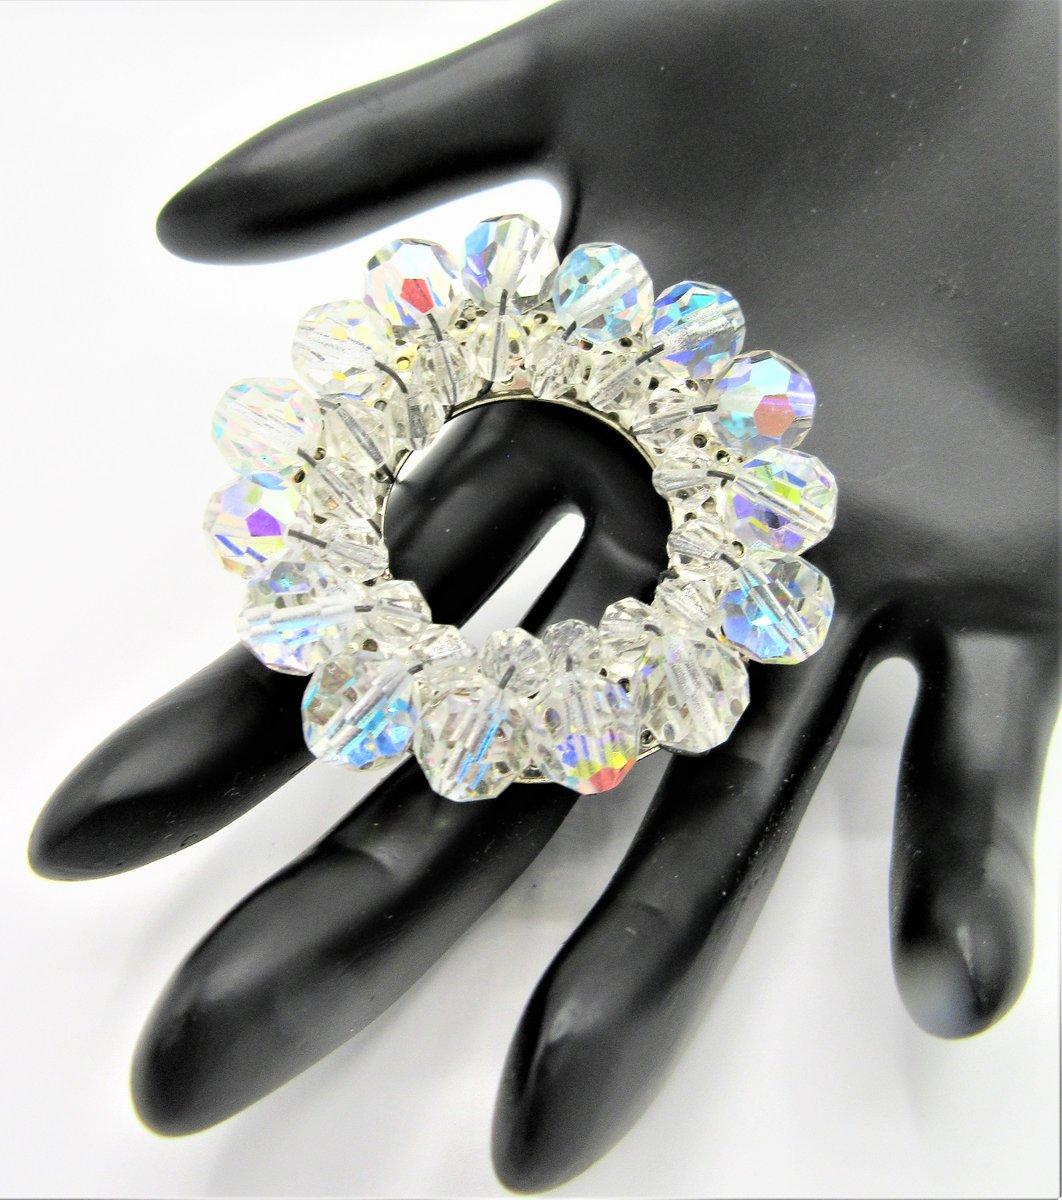 Excited to share the latest addition to my #etsy shop: Crystal Circle Brooch, AB Crystal Beads, Unsigned Beauty, Circle Glass Pin https://etsy.me/30b89XJ #birthday #no #women #midcentury #clear #silver #glass #vintagebrooch #vintagobsessionspic.twitter.com/EwEvJRoNwH